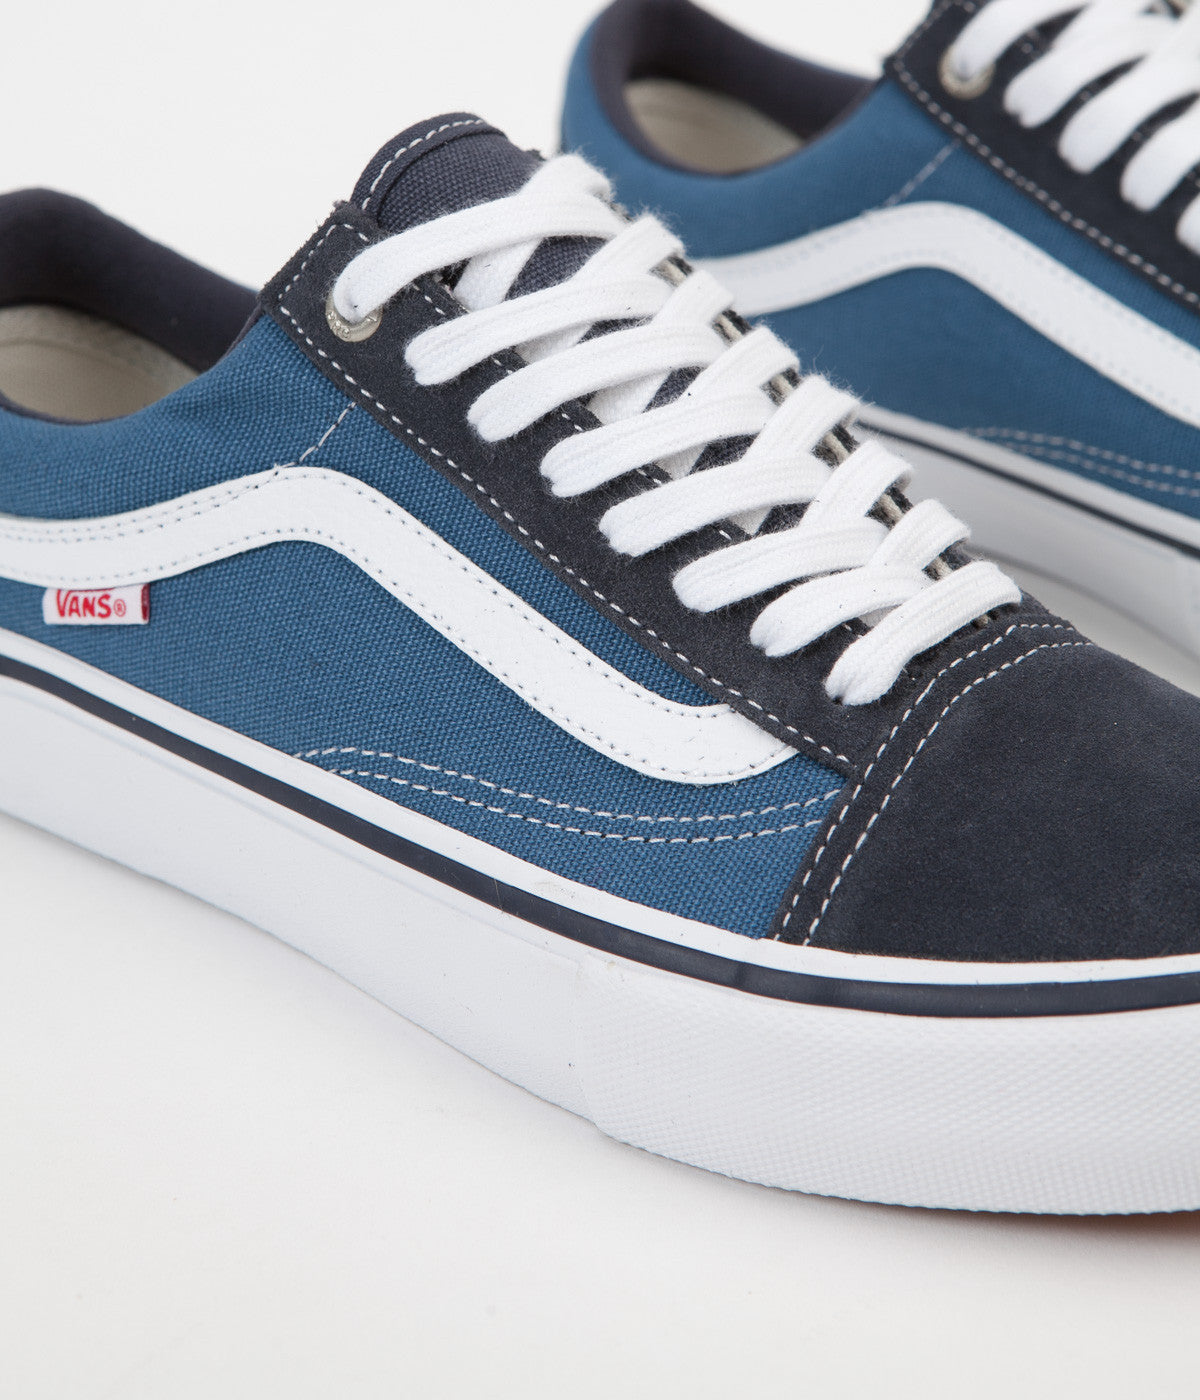 factory outlets shop for newest Discover Vans Old Skool Pro Shoes - Navy / STV Navy / White | Flatspot